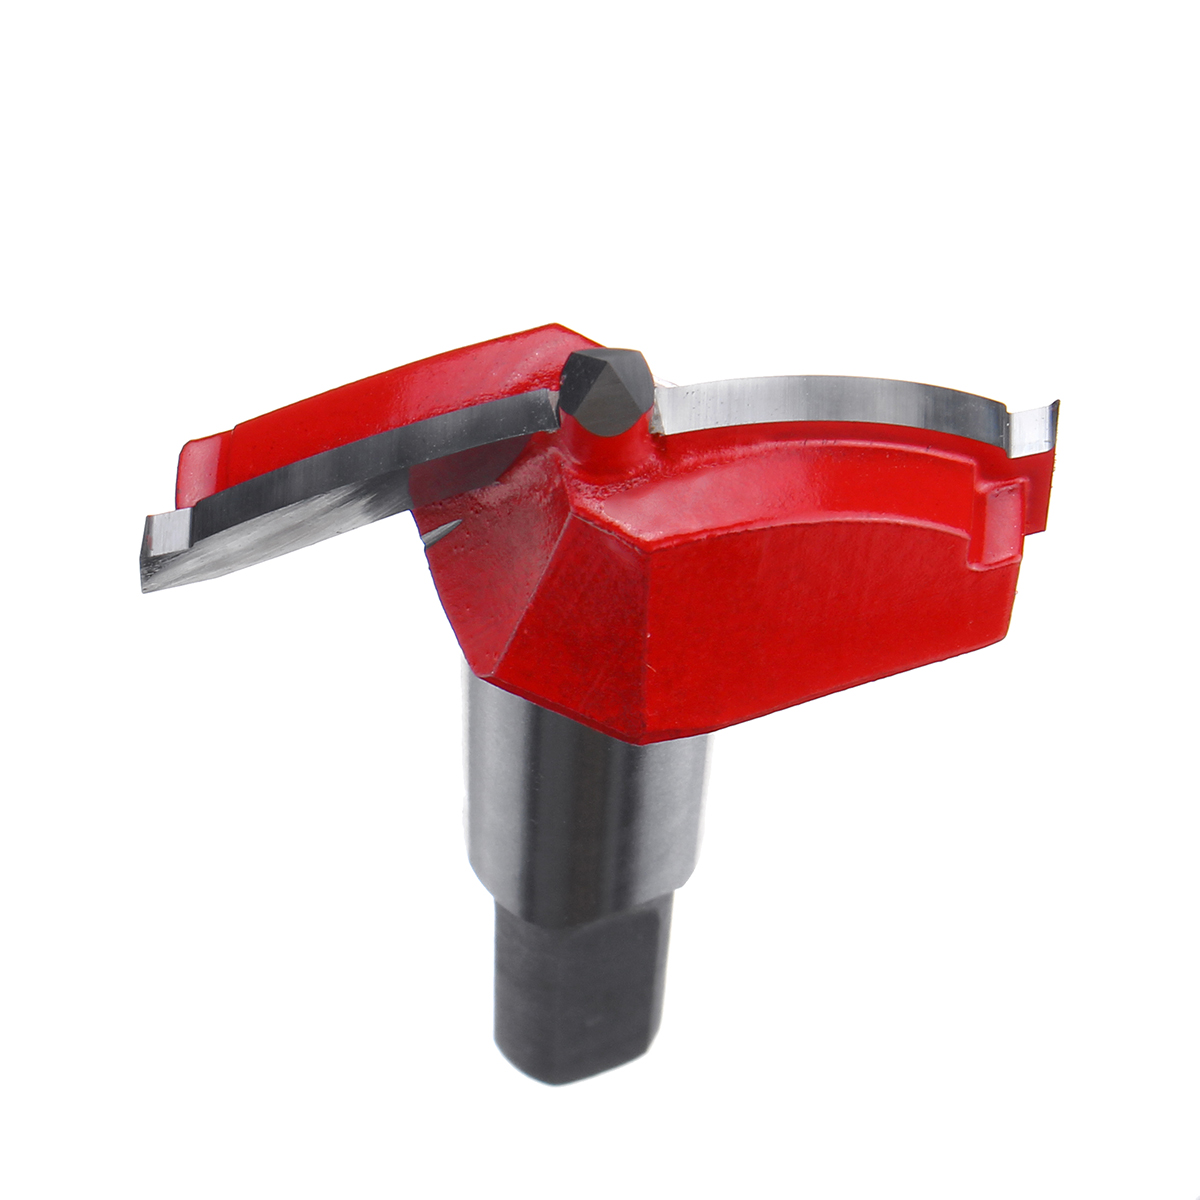 Wood Drill Bit Hinge Hole Cutter Reamer Woodworking Table Carving Tool Hole Saw Cutter